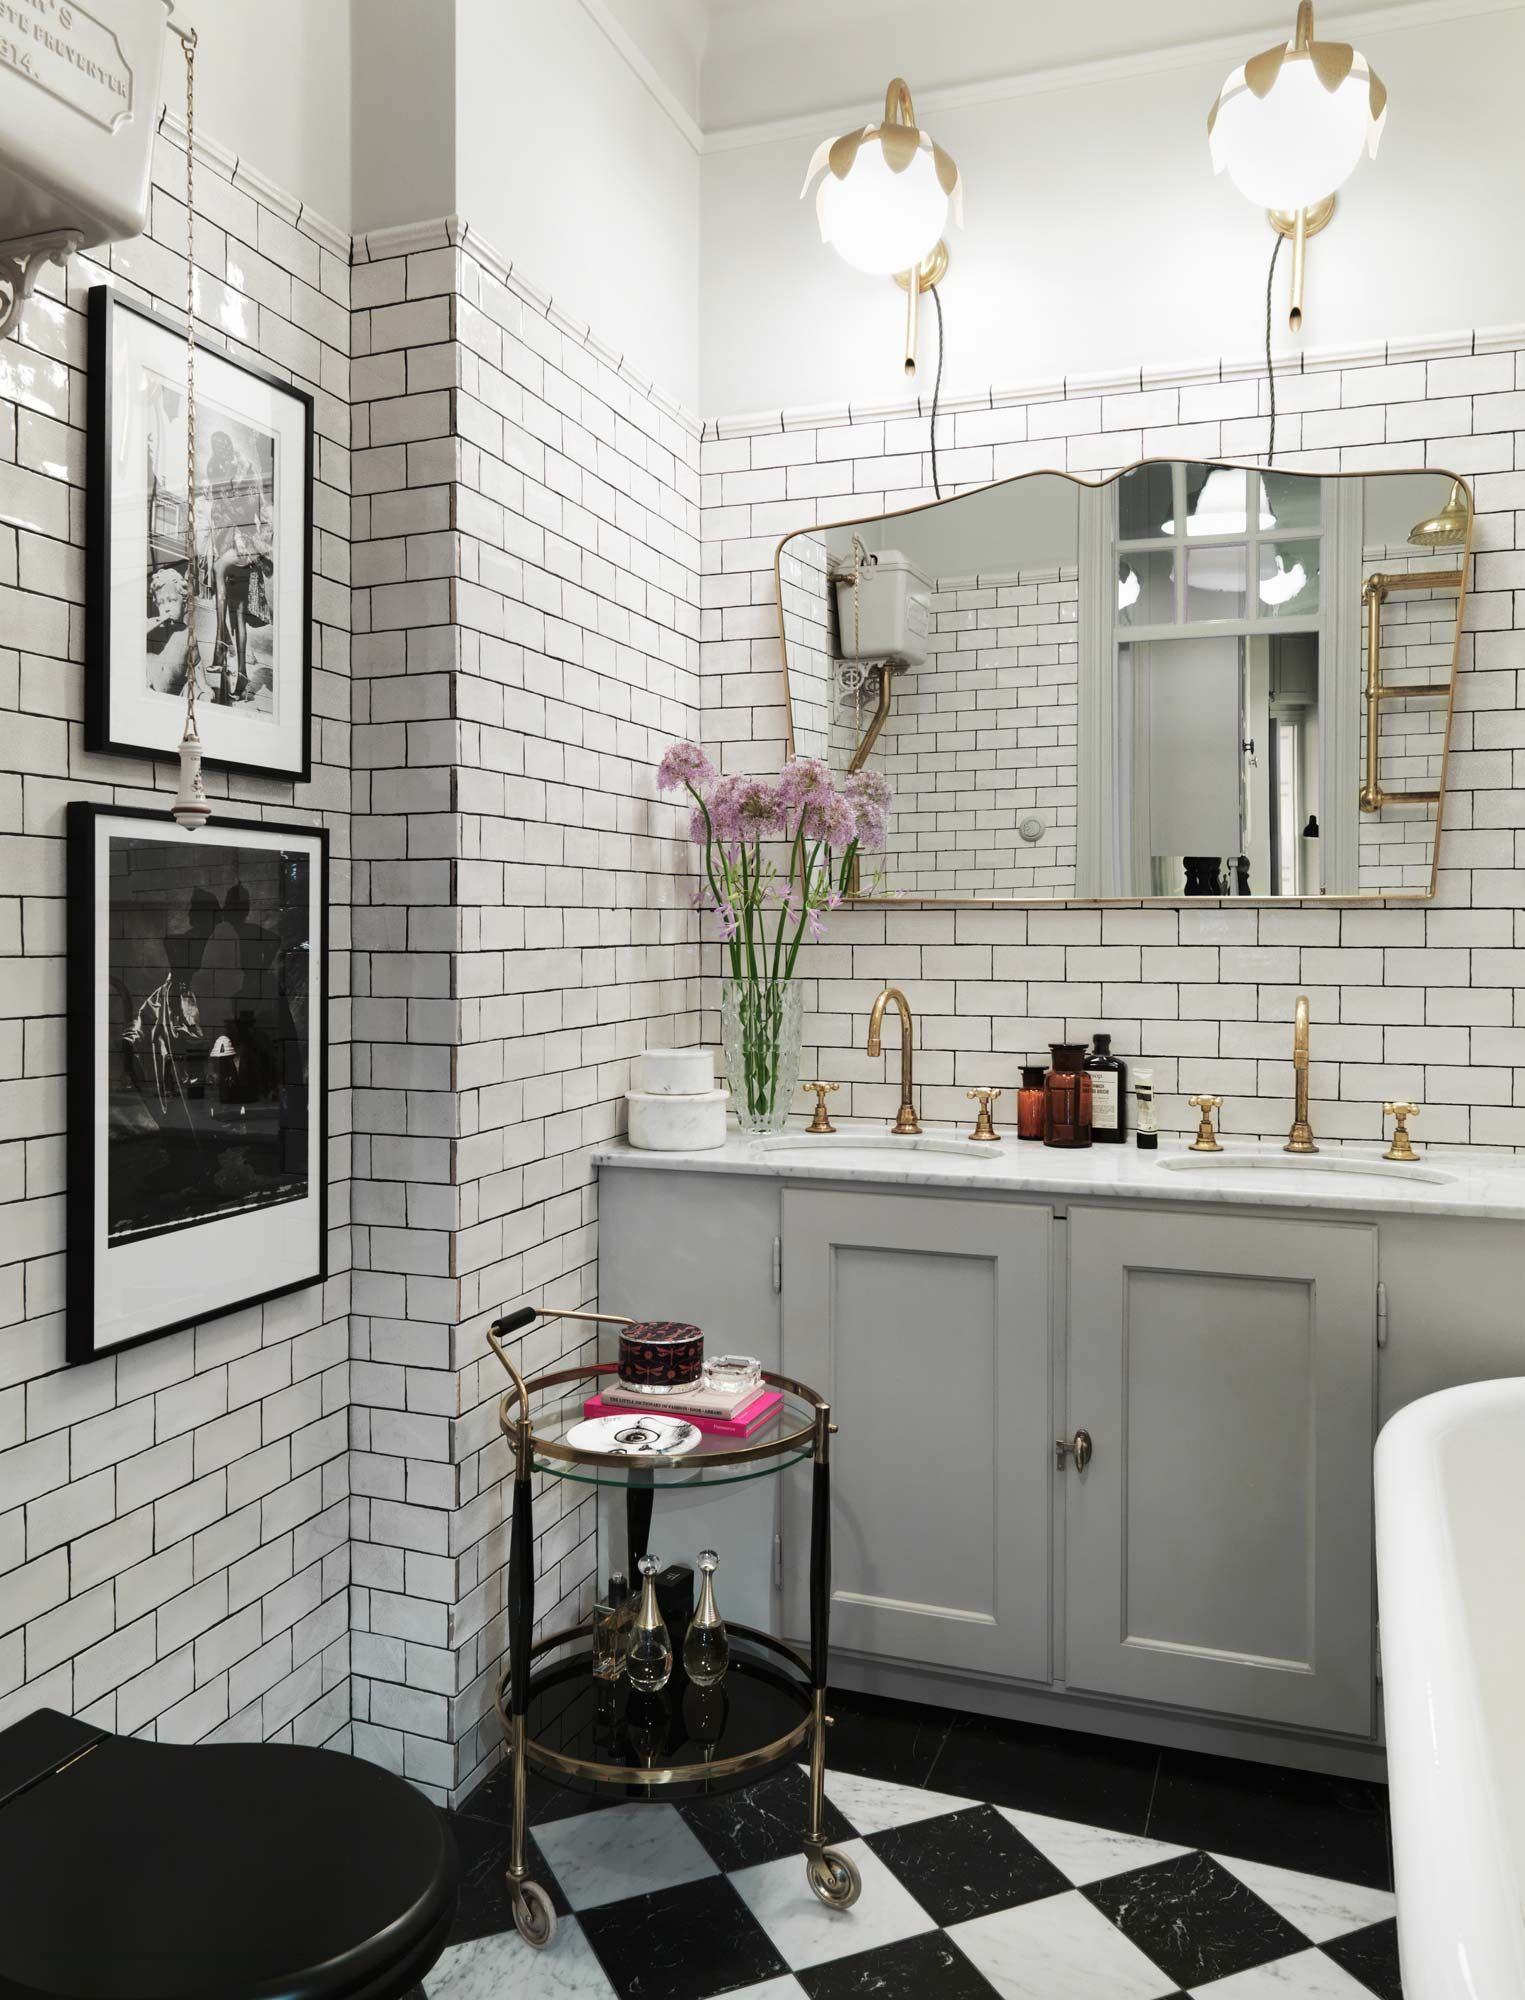 Gravity Home: Elegant Colourful Home | Bathrooms | Pinterest ... for Black And White Art Deco Bathroom  55jwn